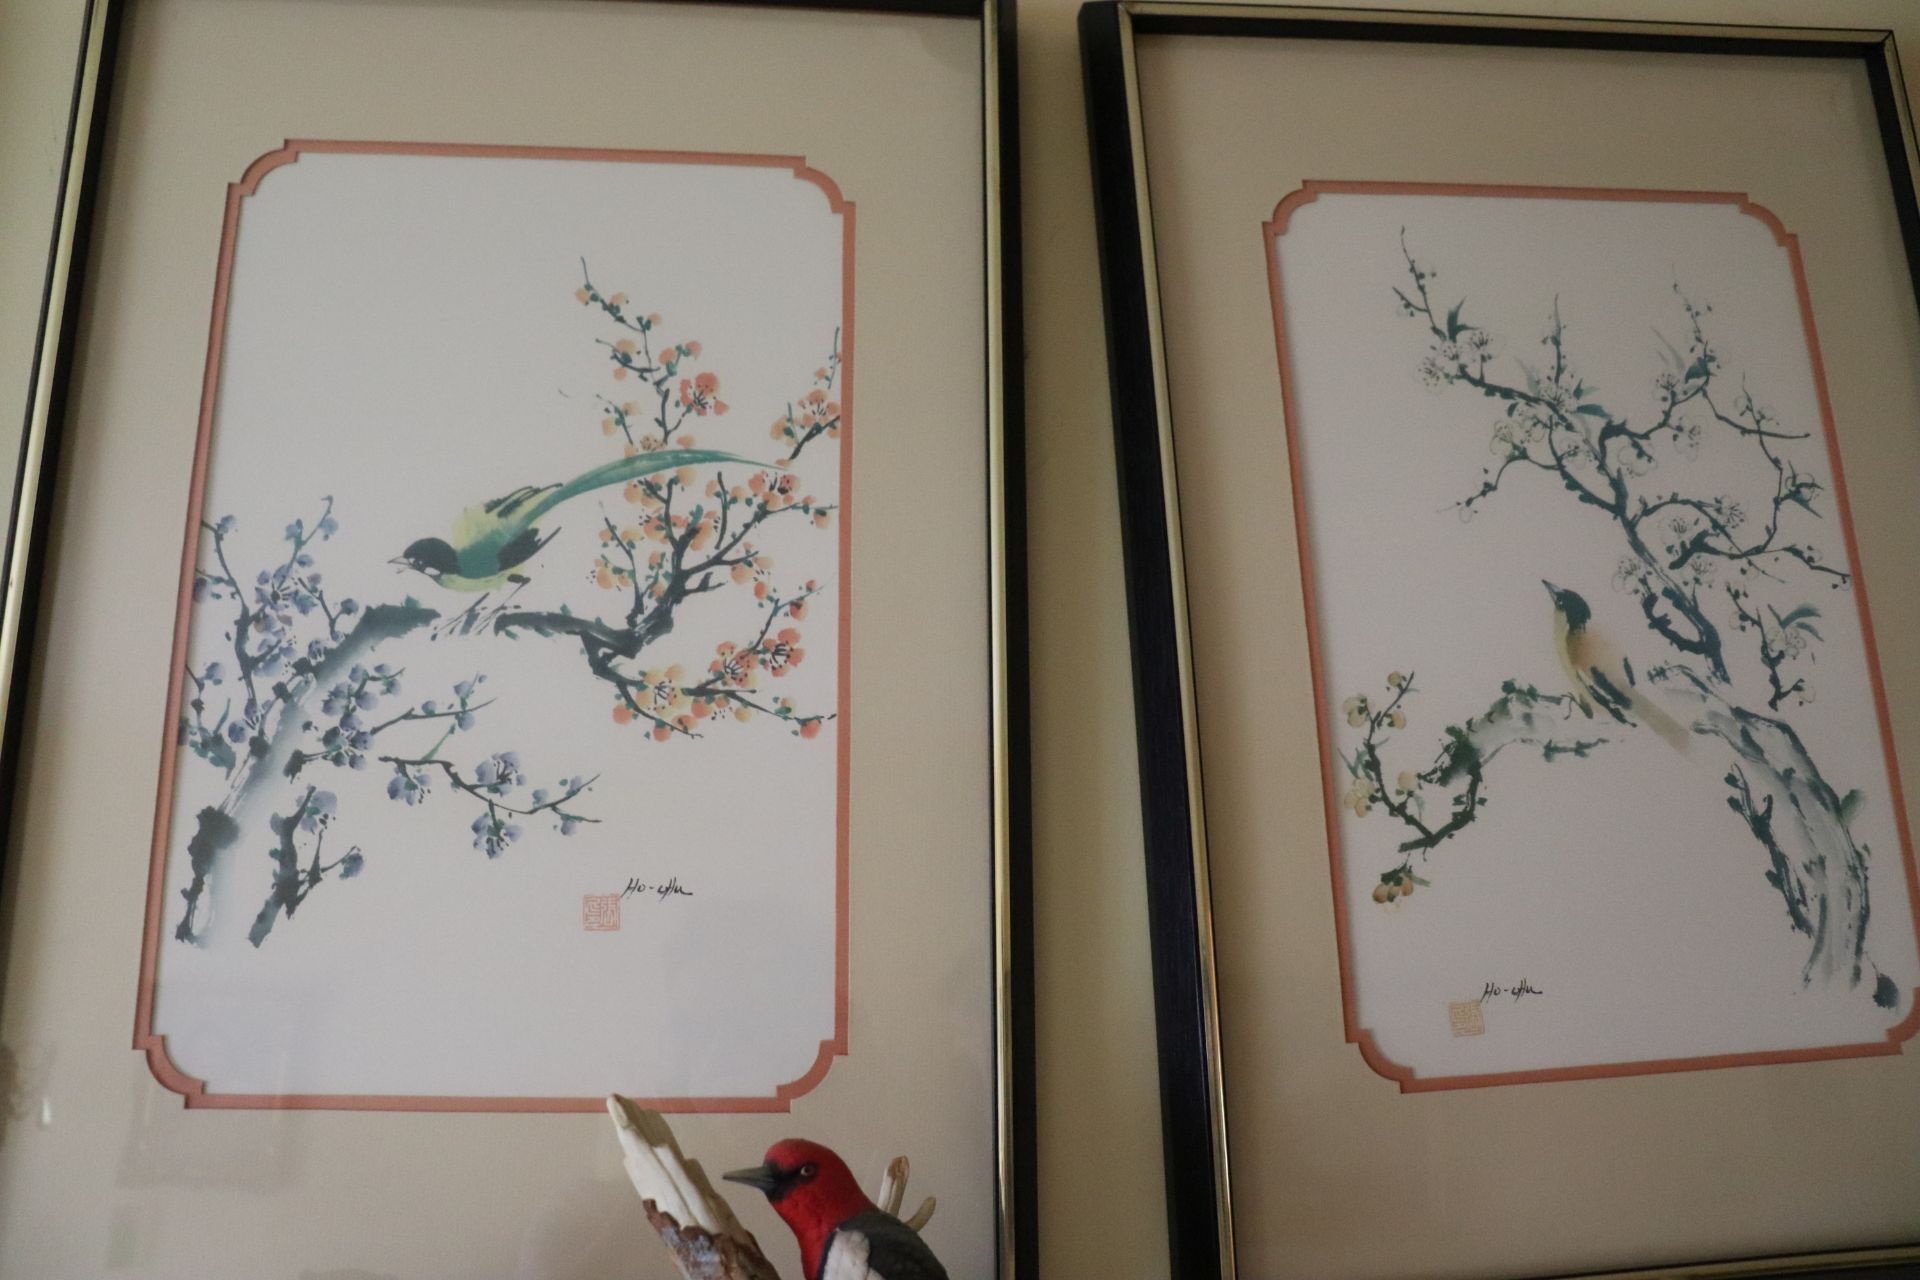 Set of four Asian color screenprints on paper depicting birds and foliage, all matted and framed, ap - Image 4 of 5